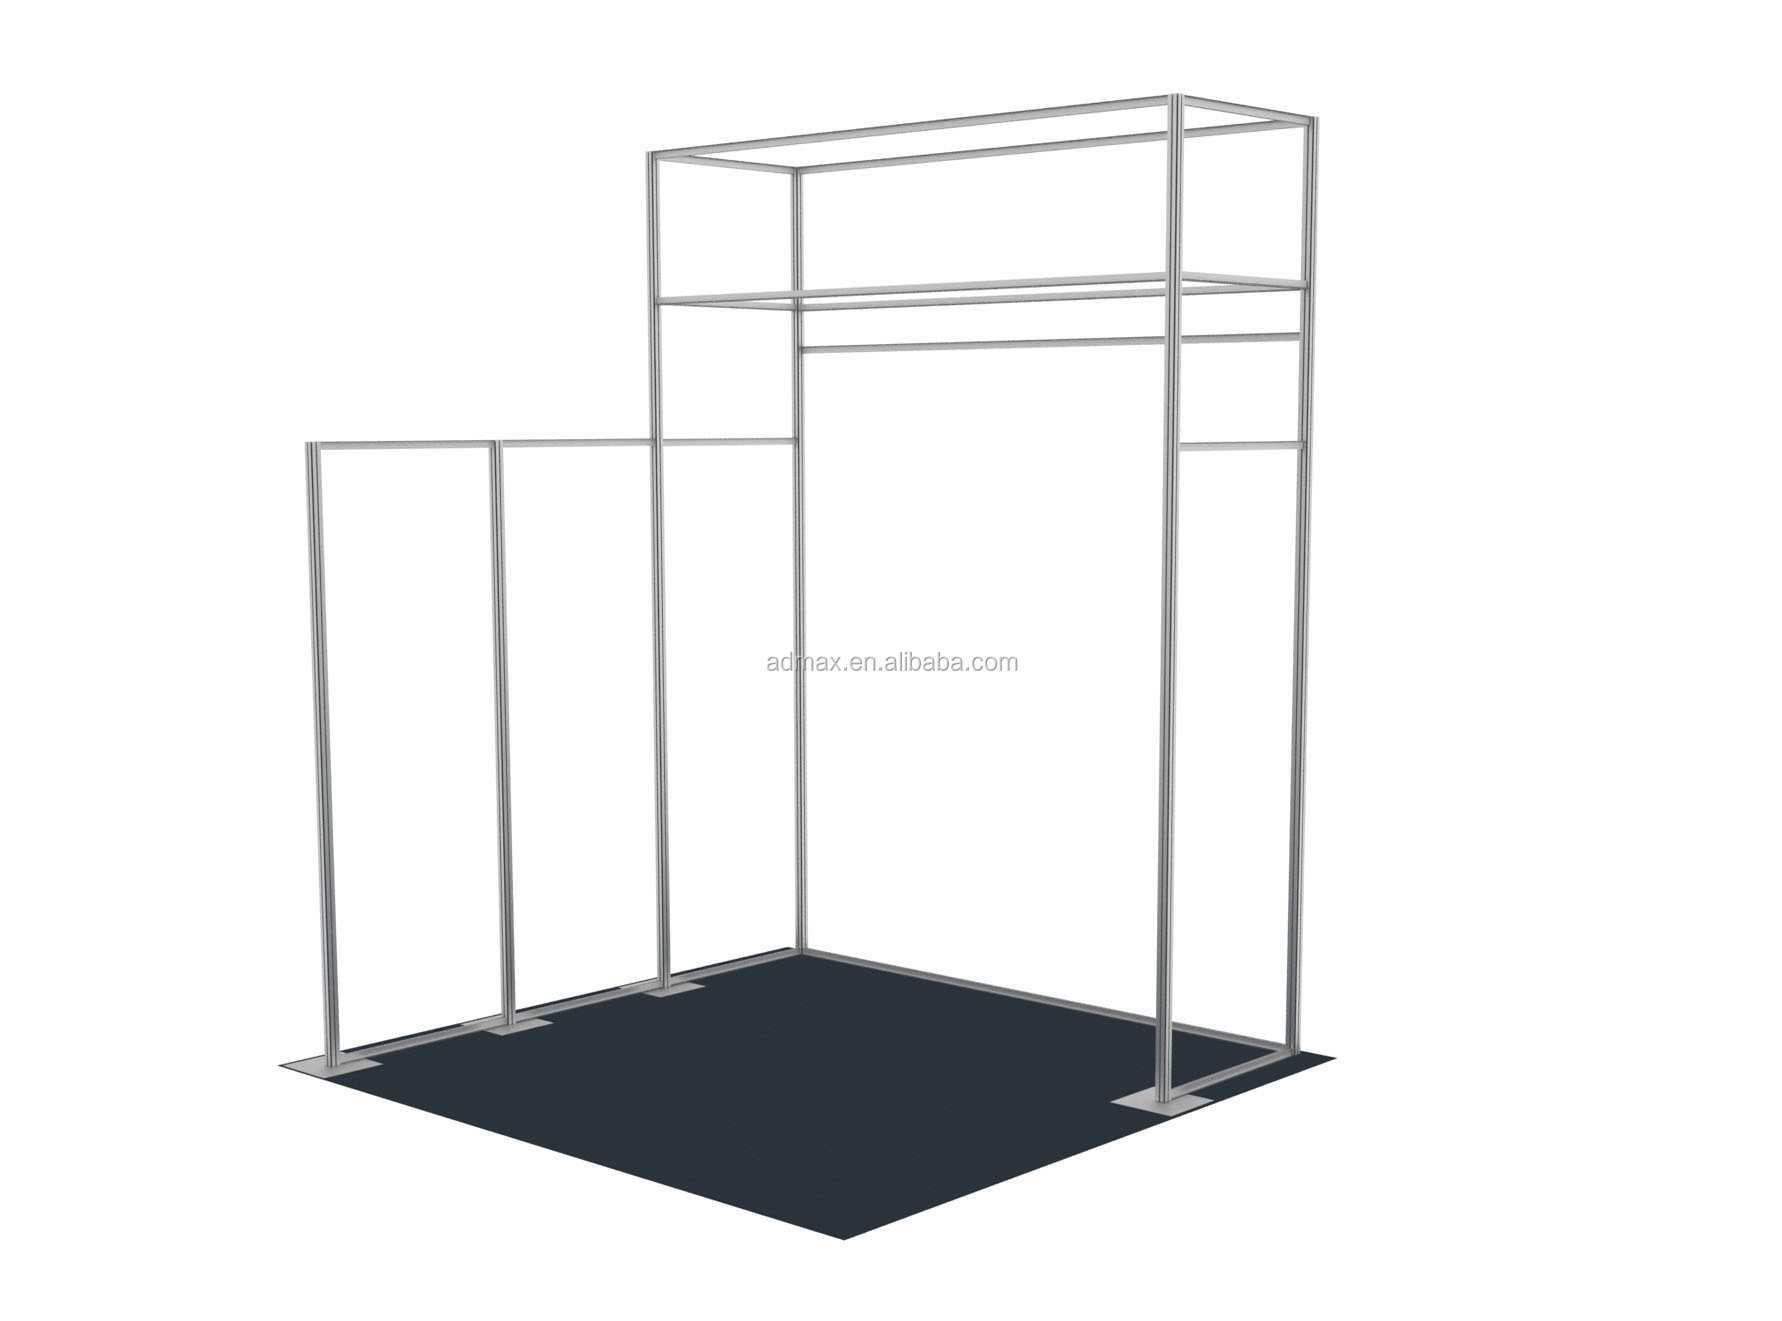 Modular booth Trade show booth customize size, item-33007 also provide printing service, easy chang picture